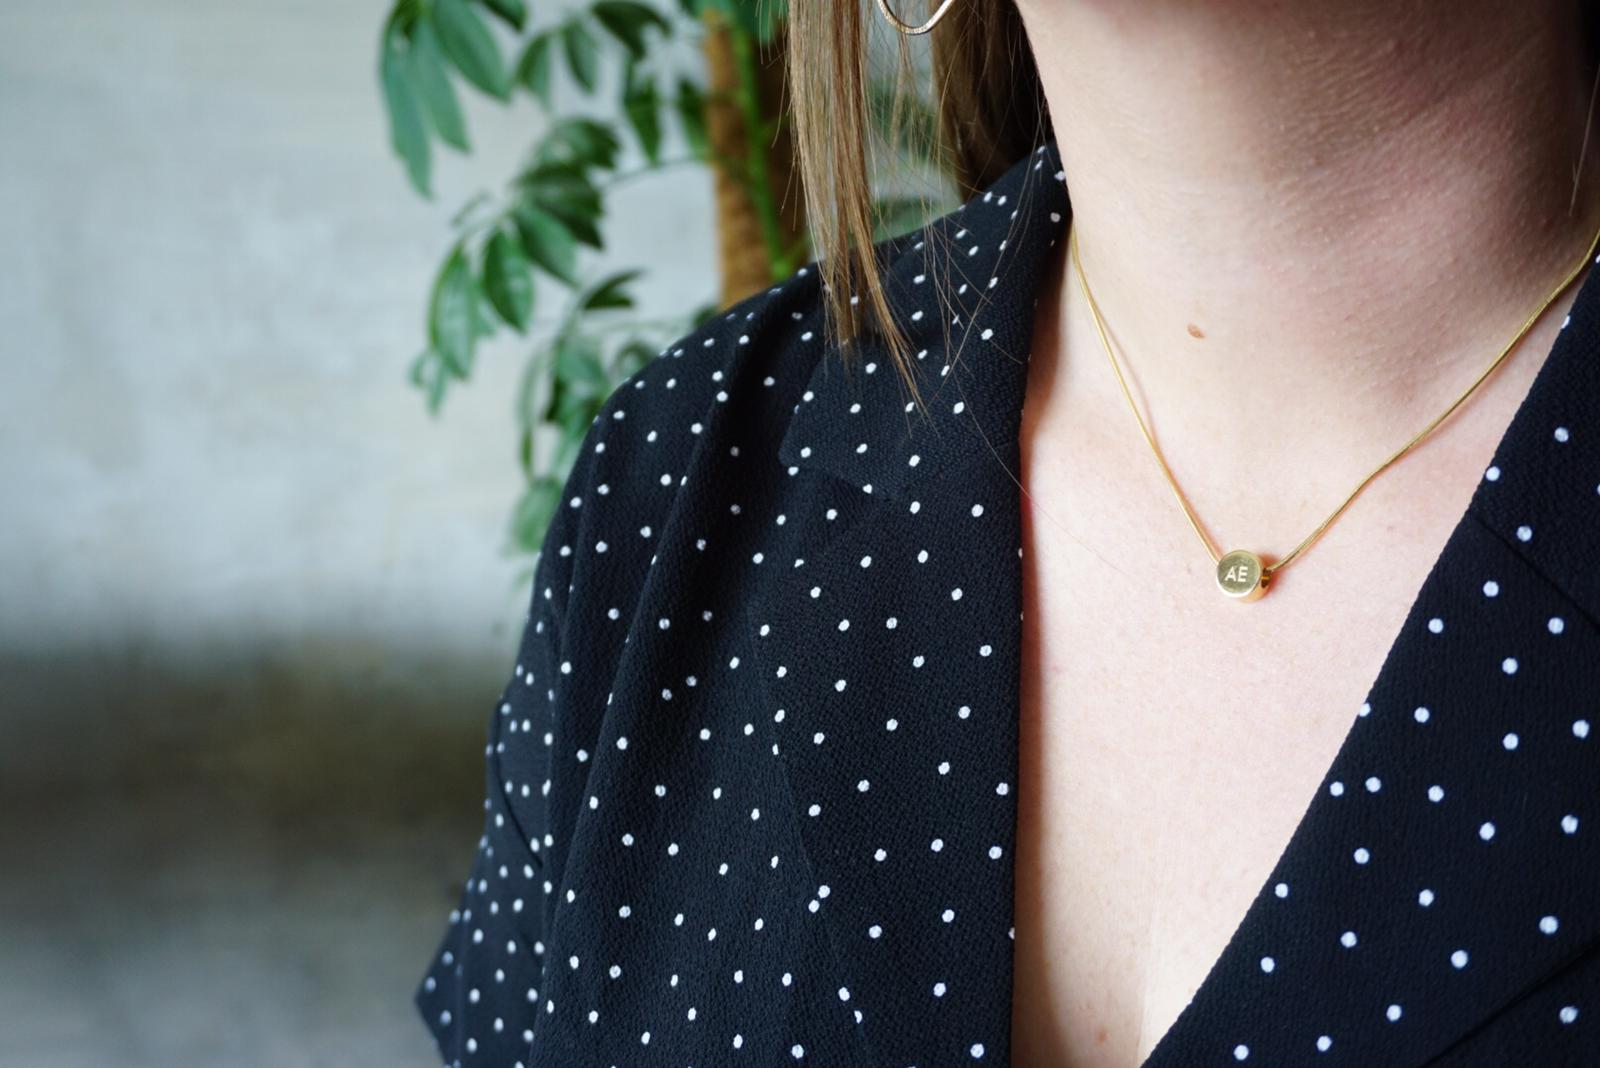 my amt | amelia from shropshire wears Alice Made This engraved gold necklace